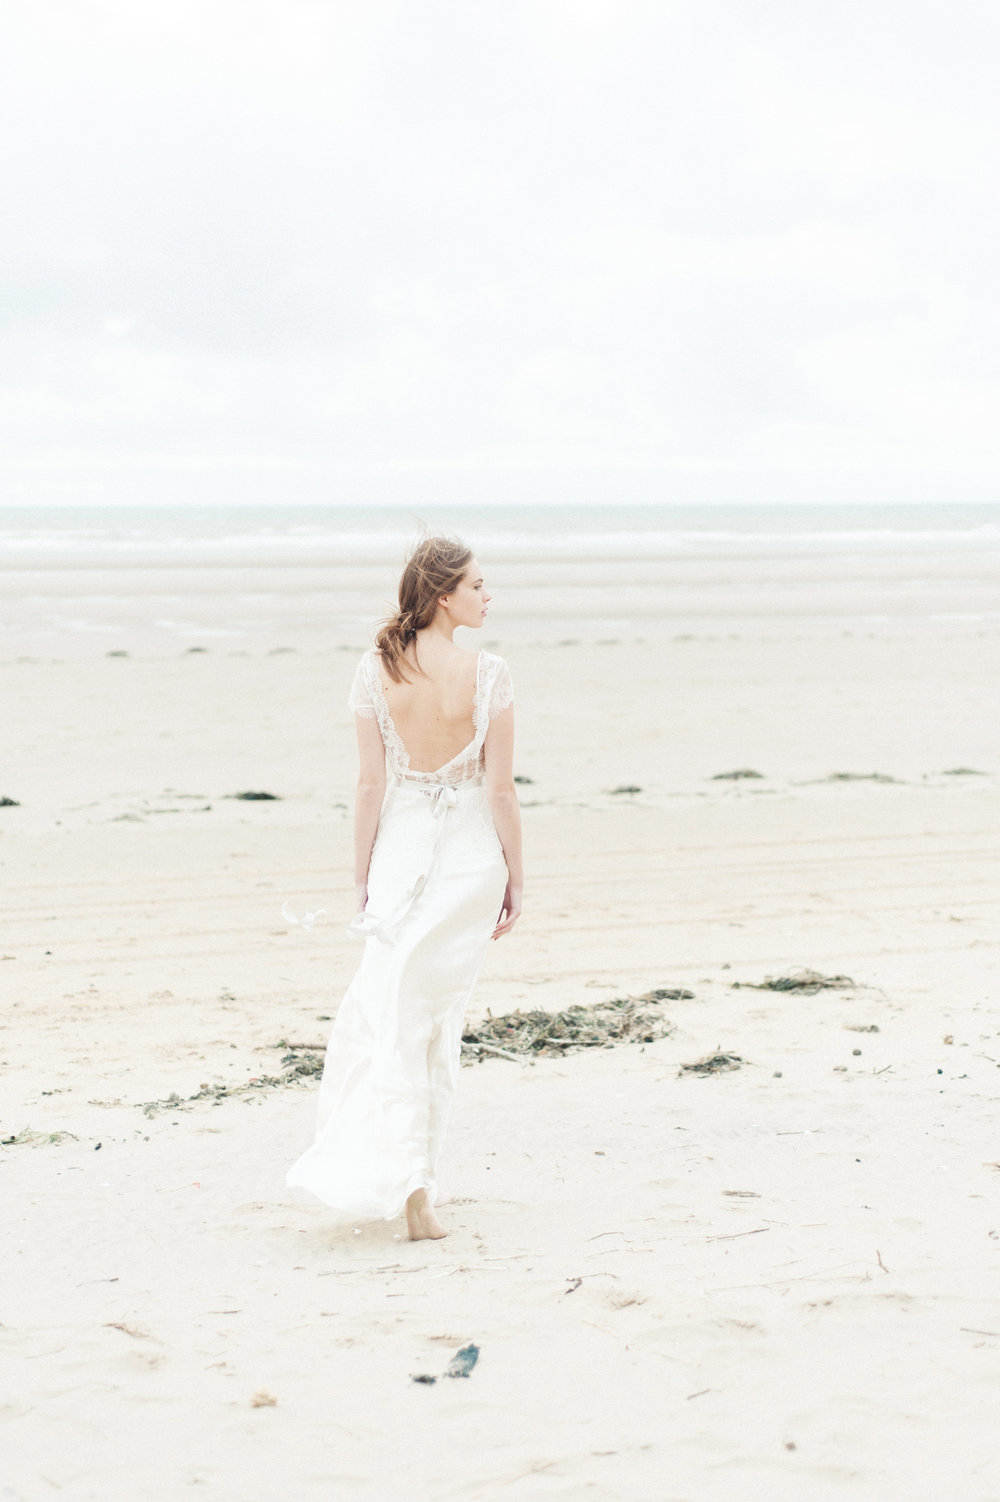 Kate-Beaumont-Wedding-Dresses-Formby-Beach-Emma-Pilkington-40.jpg